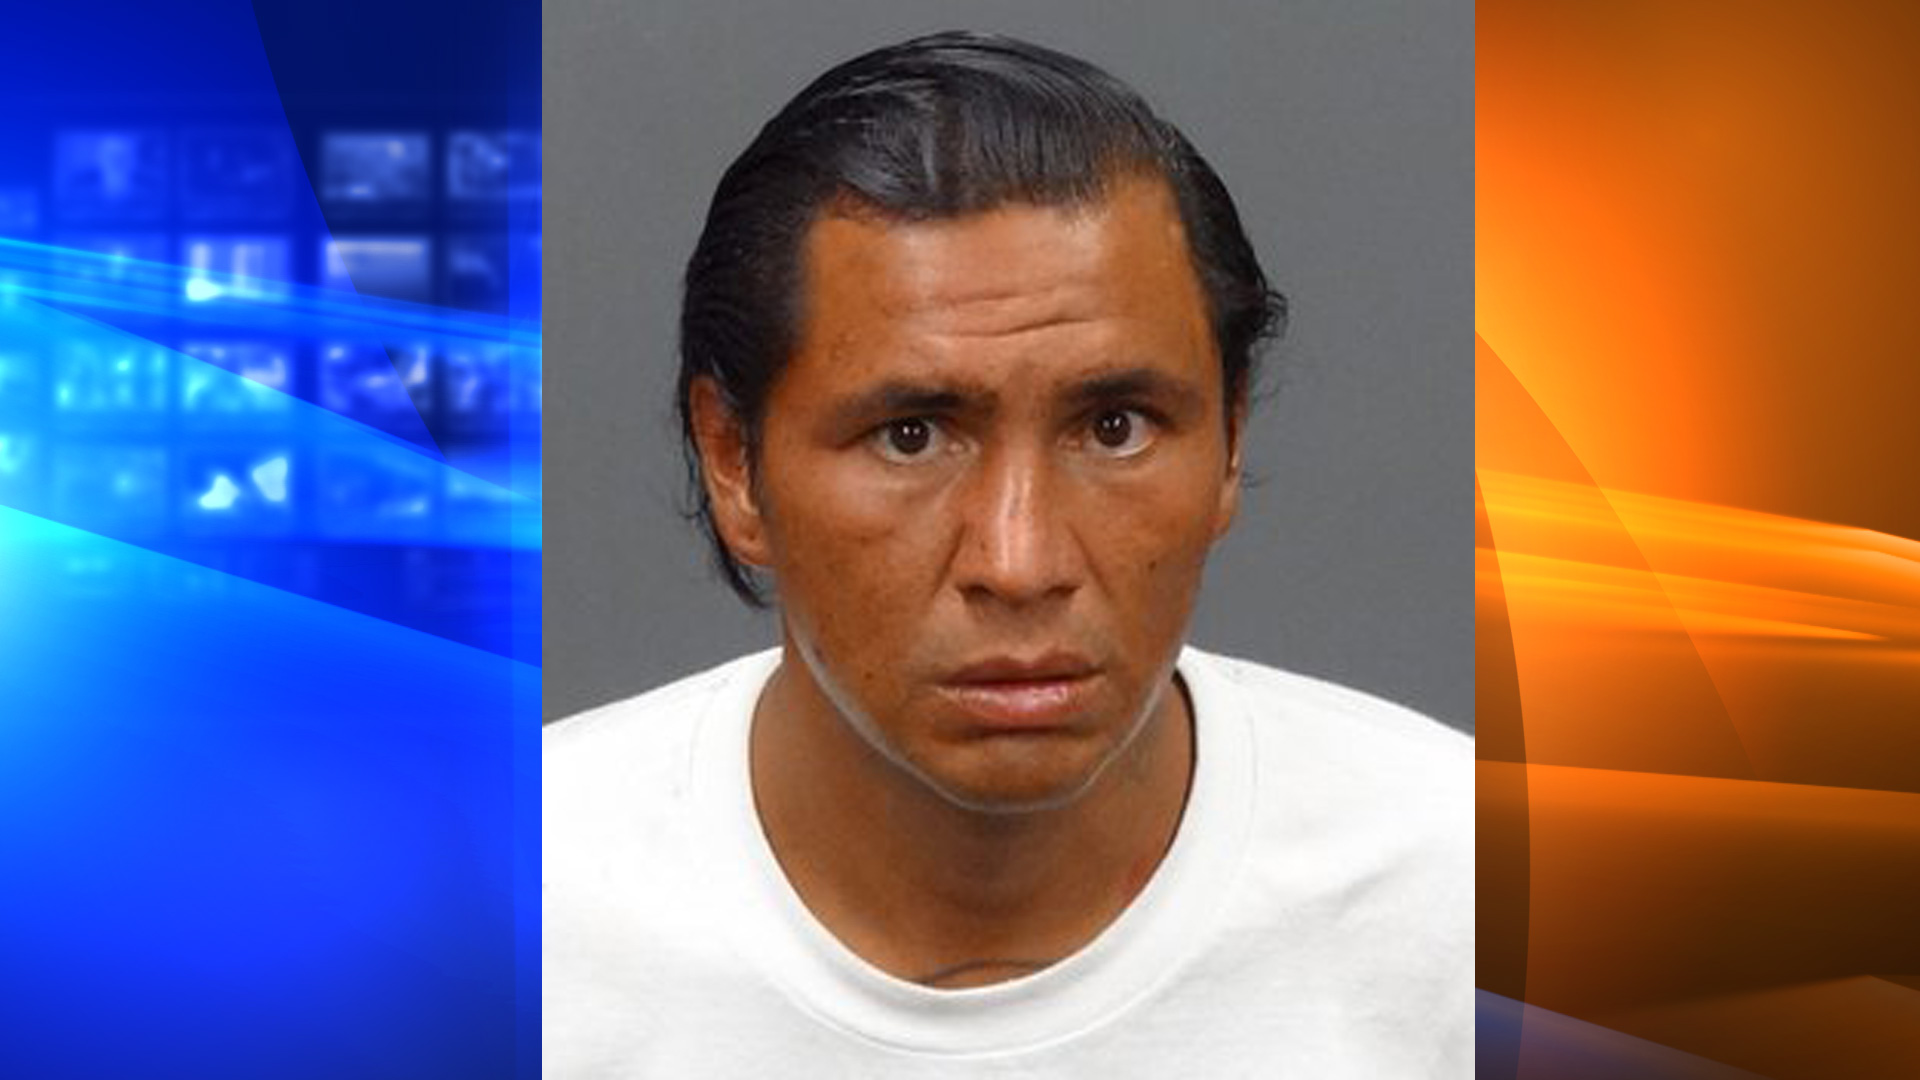 Edger Morelos is seen in a booking photo released by the Irwindale Police Department on Aug. 10, 2020.